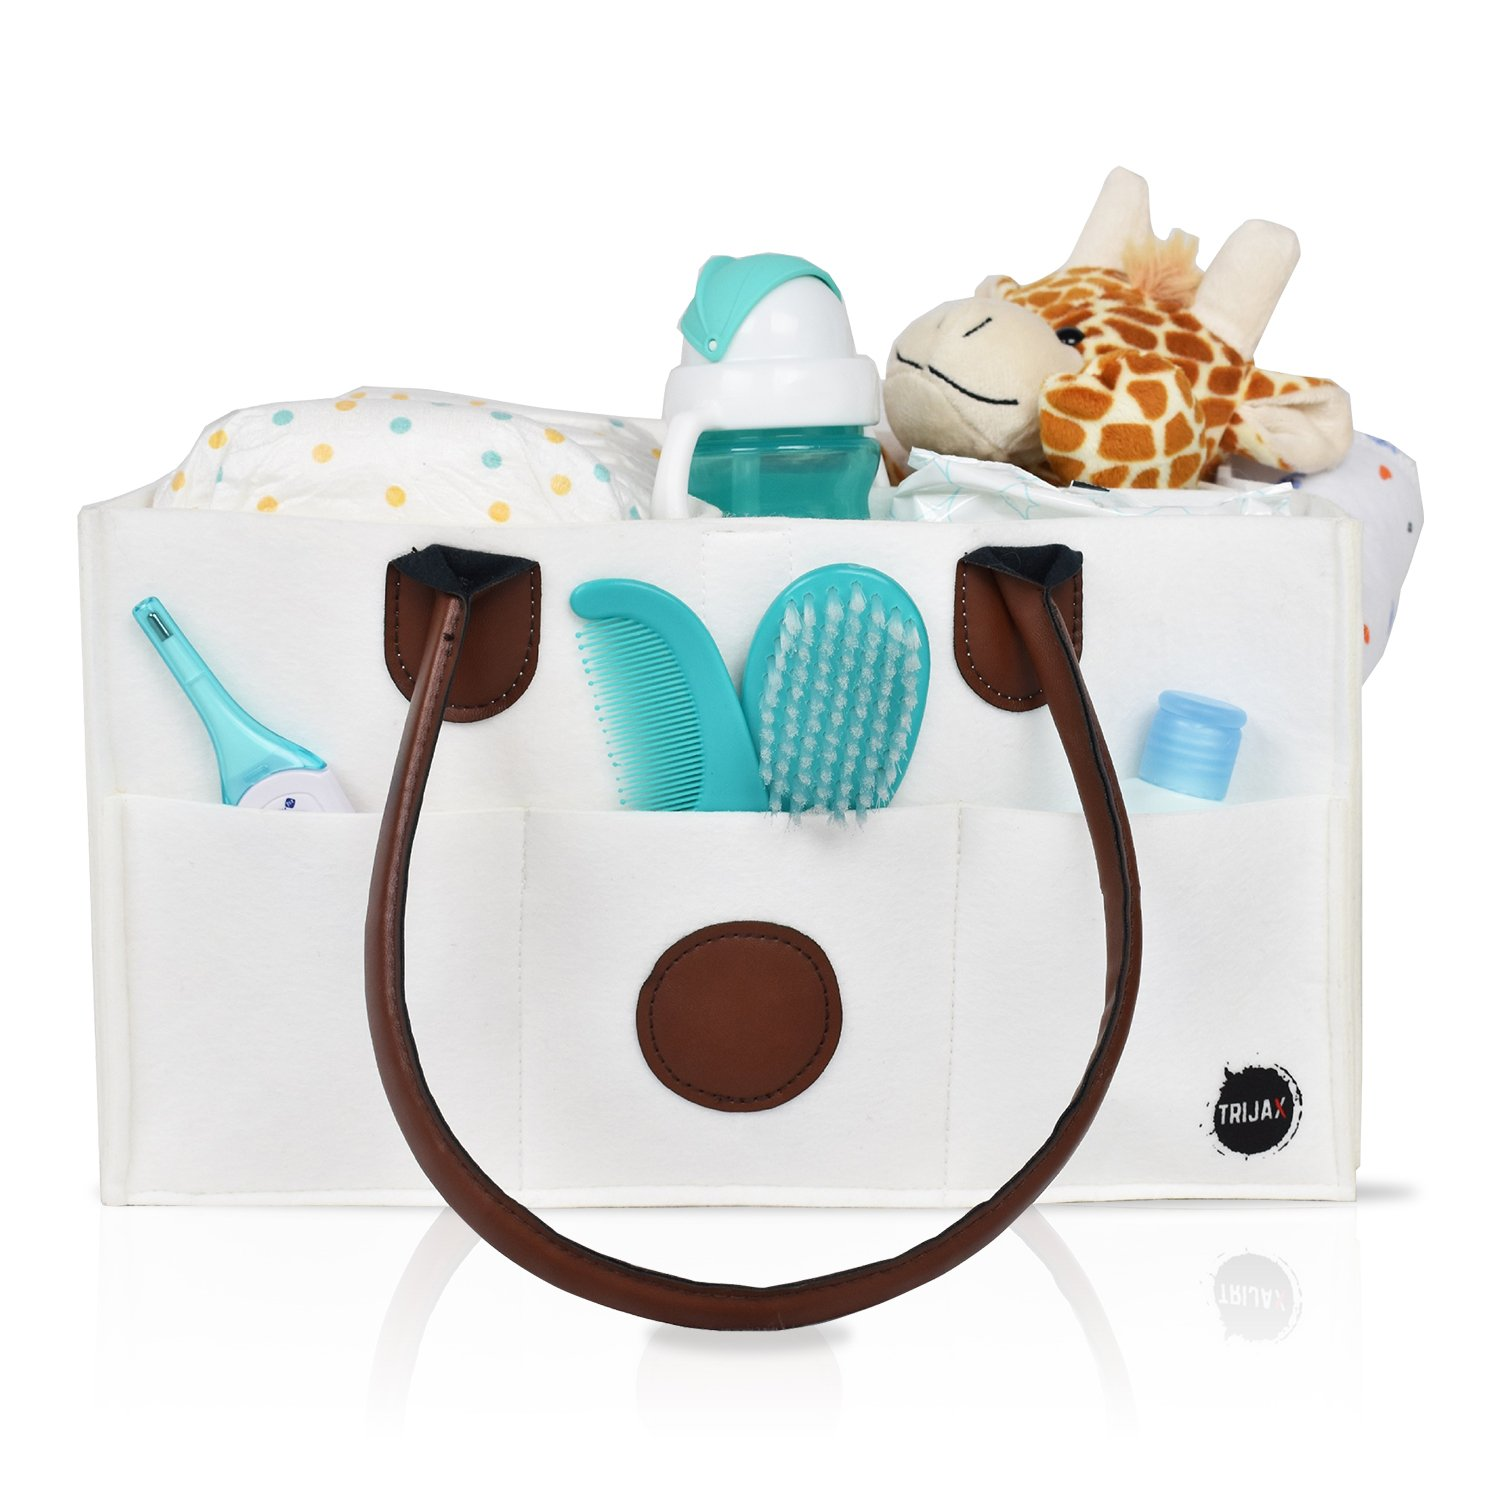 Diaper Caddy Organizer: New Baby Basket Storage Tote | Nursery Changing Table Organizer & Portable Diaper Holder | Great Car Caddy | Premium White Cloth Fabric | Bonus Baby Change Mat Included TRI-FI PTY.LTD.